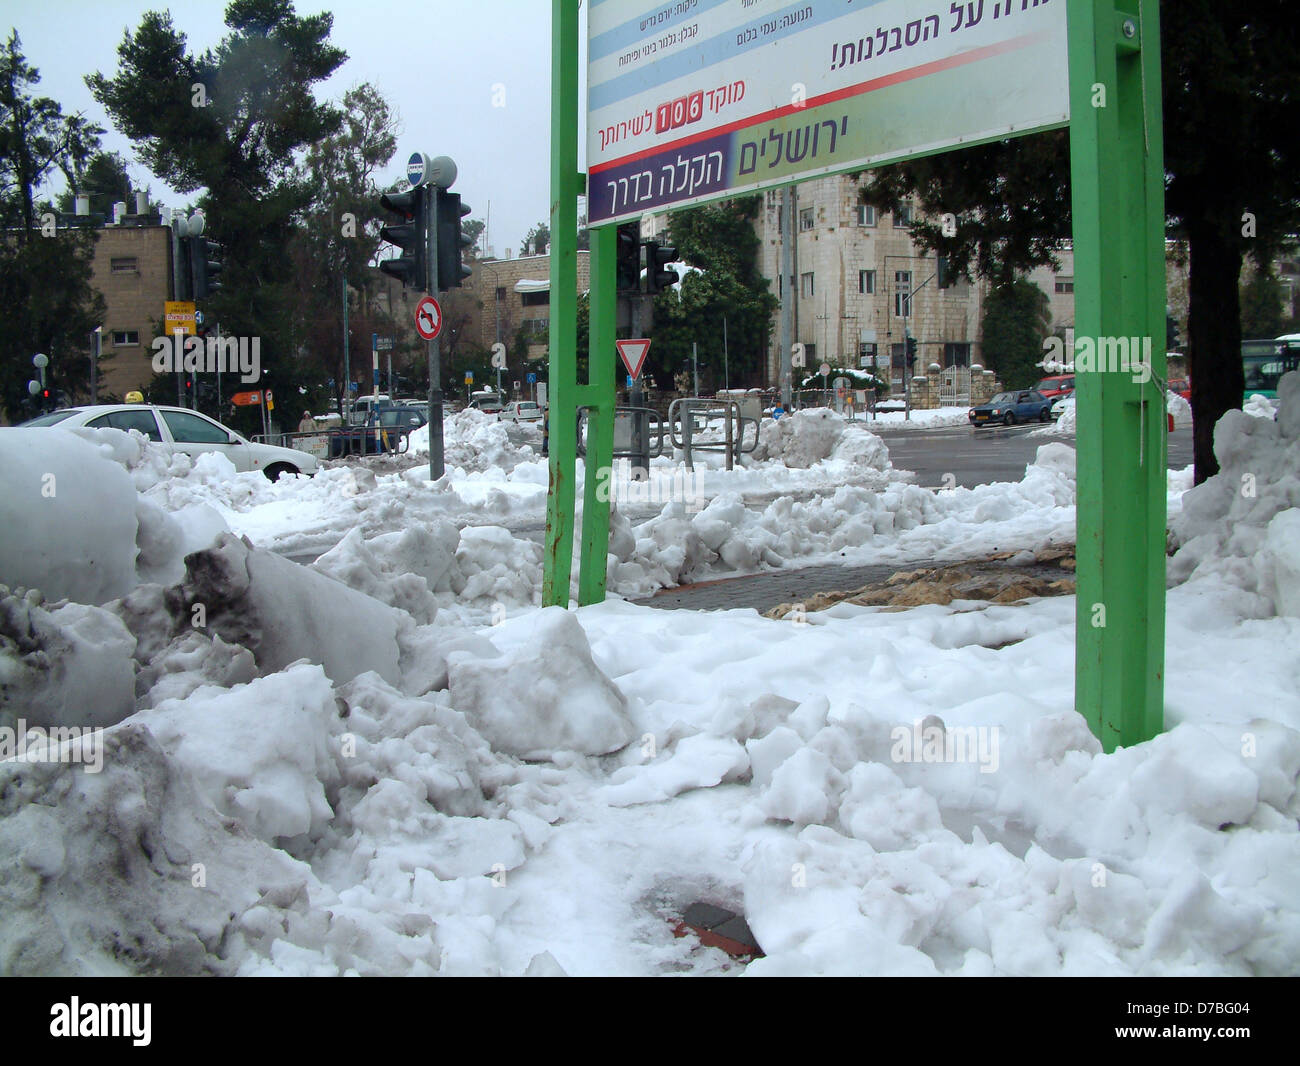 snow in jerusalem, 27.2.2003 - Stock Image